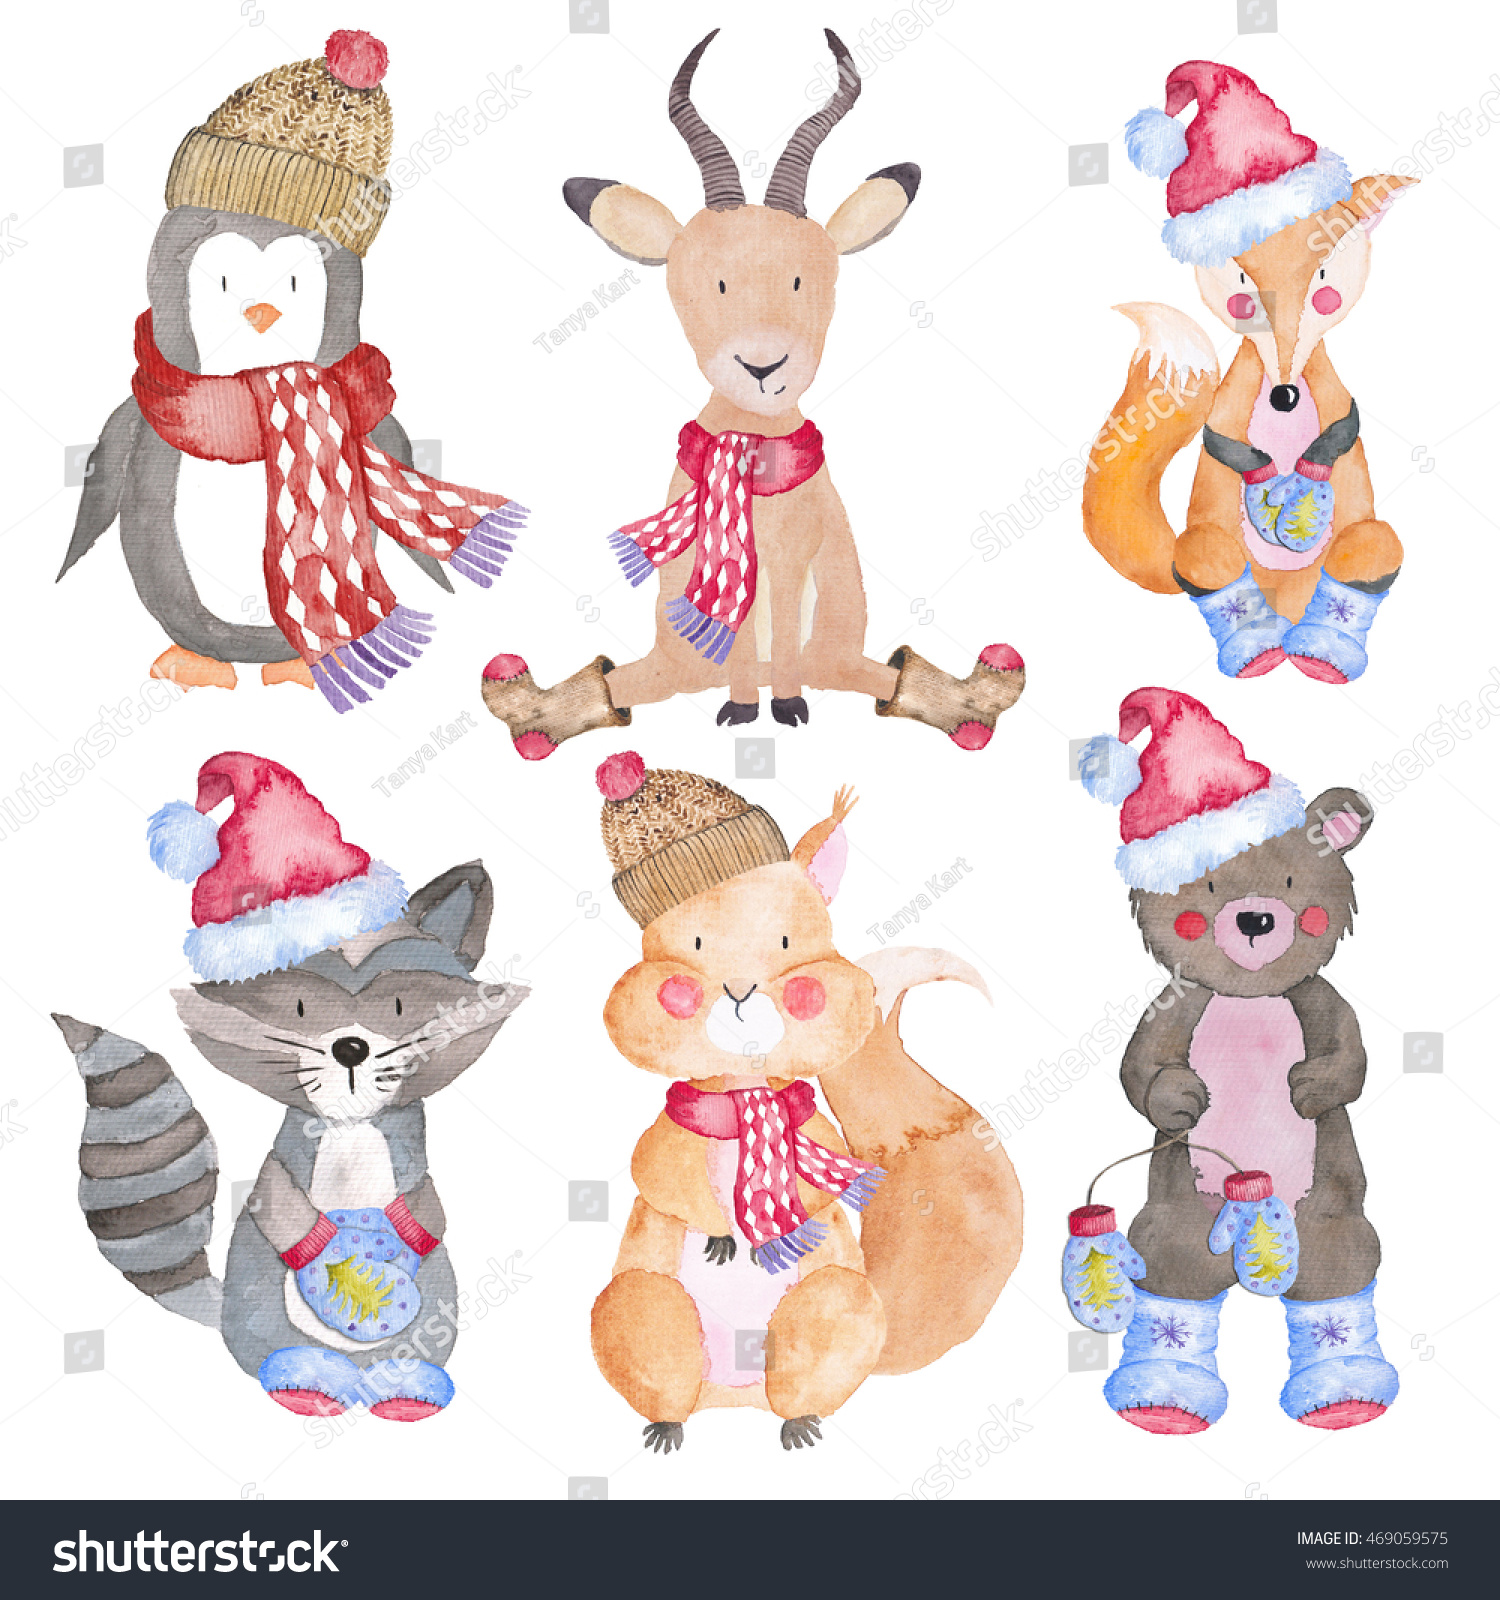 Fox with a hat new year or christmas animal isolated on white - Christmas Winter Animals Fox Bear Raccoon Squirrel Watercolor Hand Drawn Illustrations Woodland Holiday Isolated